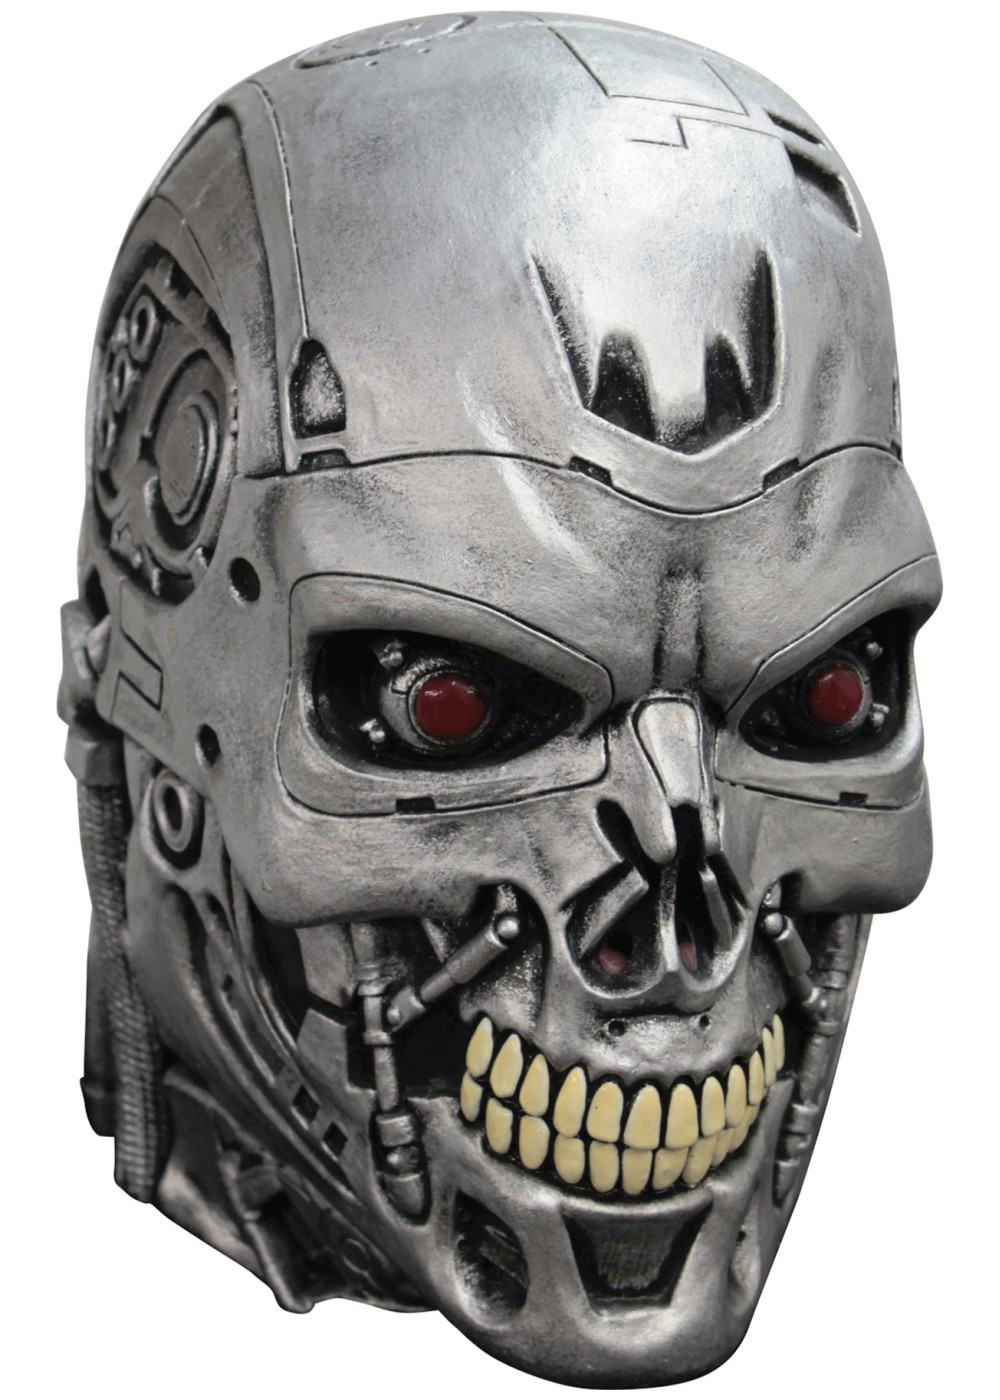 Terminator Endoskull Mask Masks